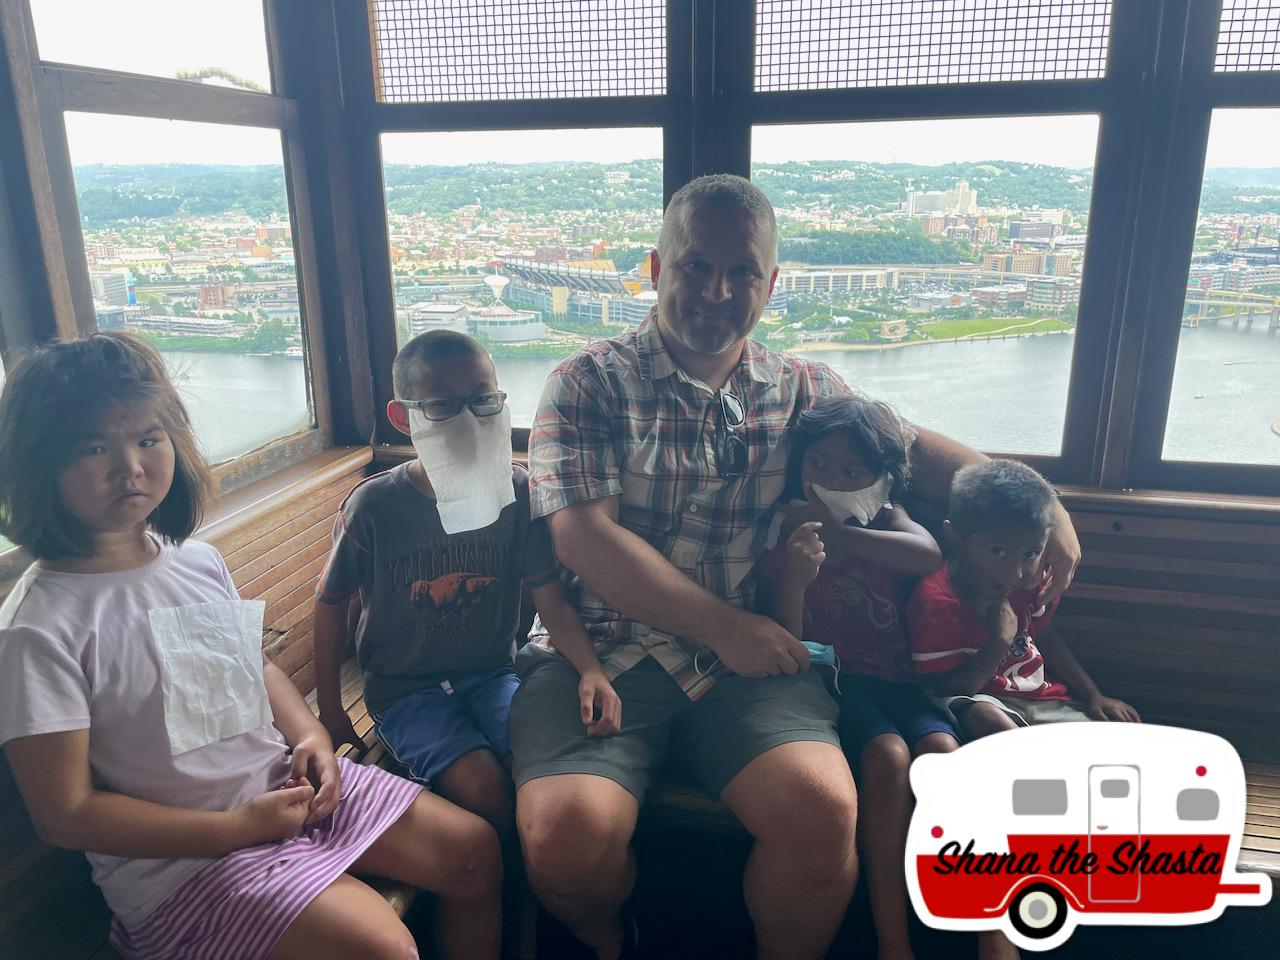 View-Inside-Duquesne-Incline